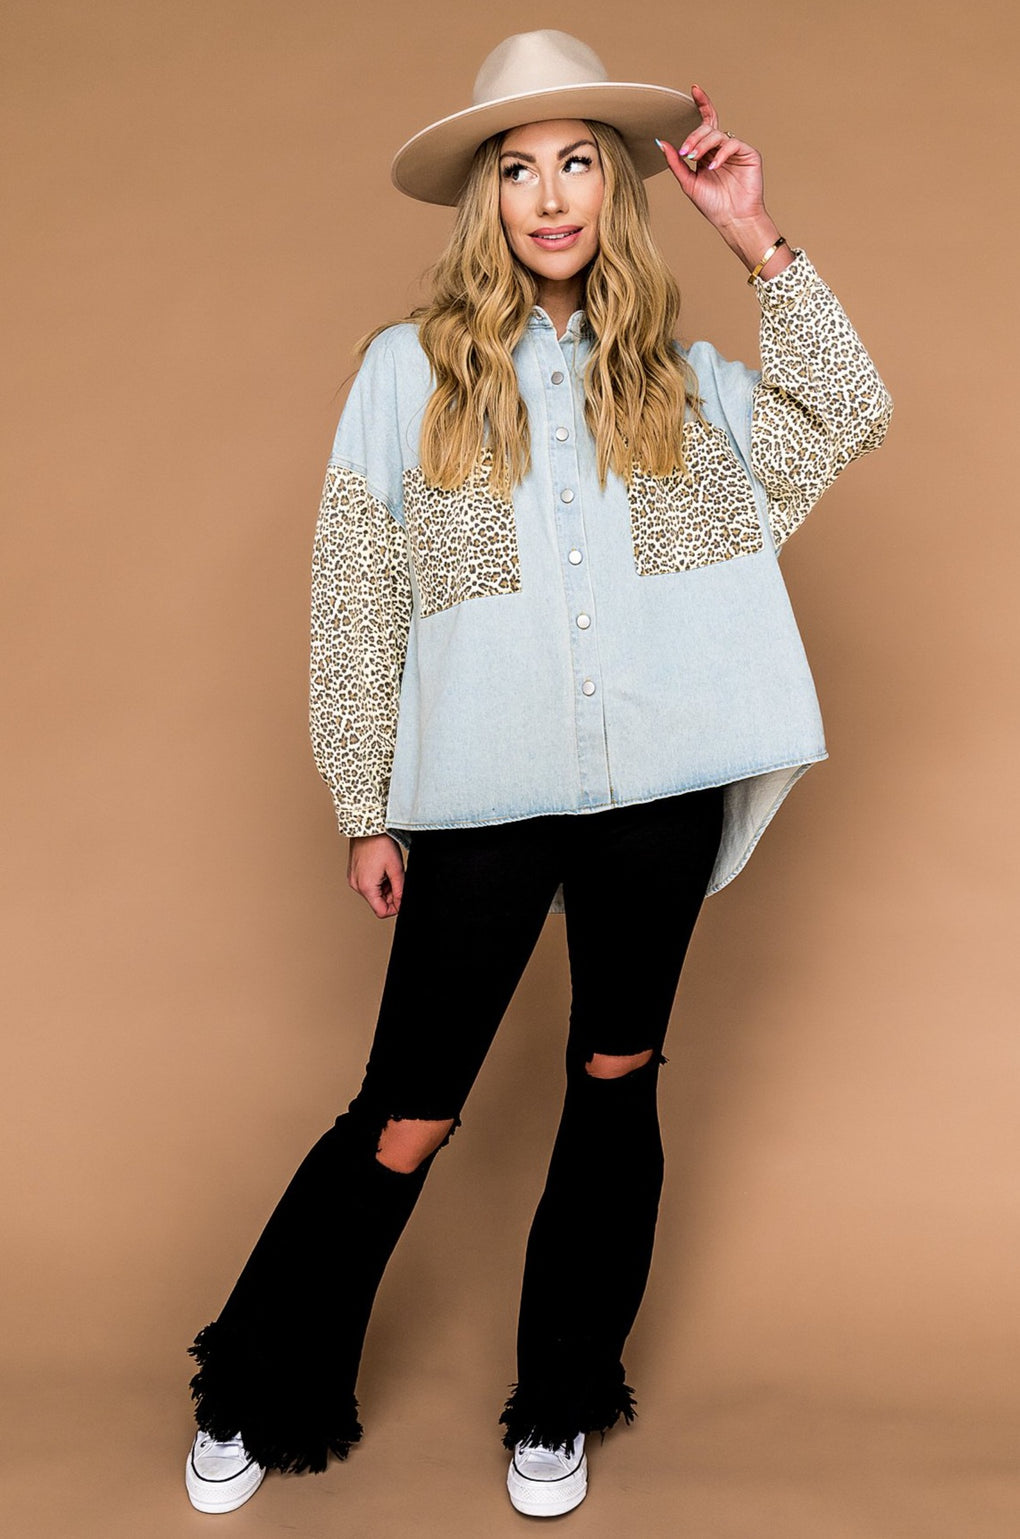 Heartbreaker Denim + Leopard Jacket in Vintage Blue